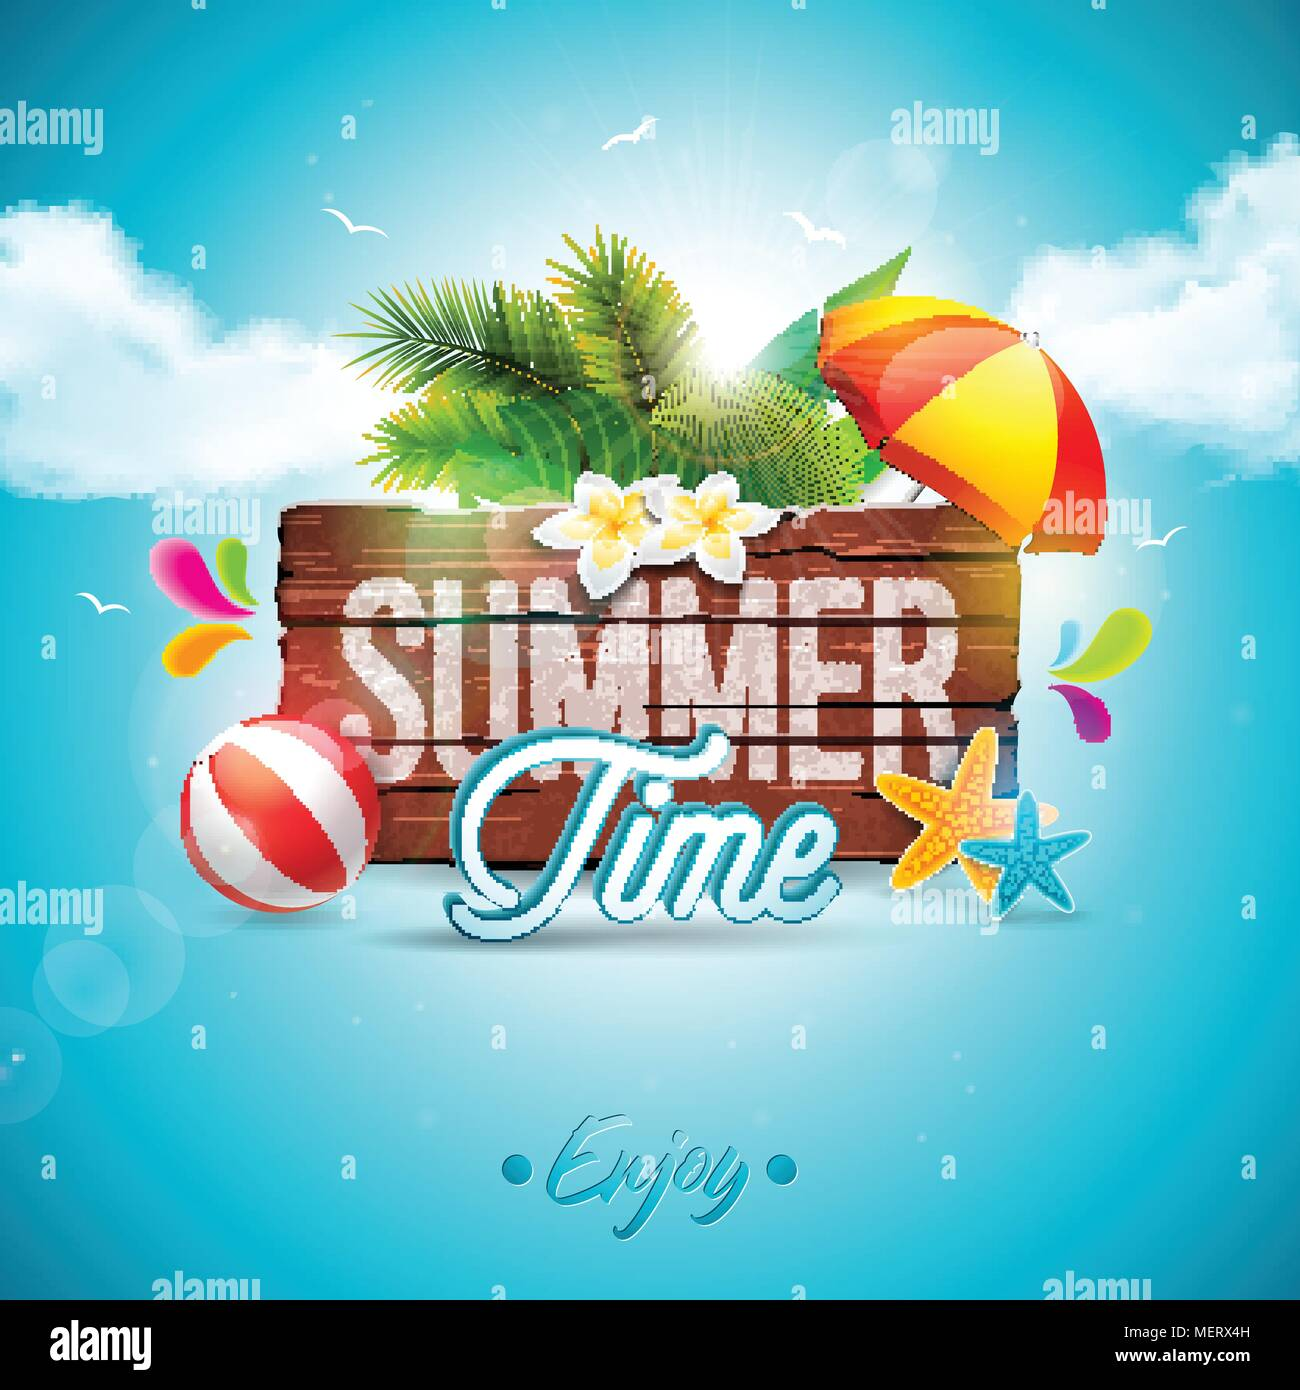 vector summer time holiday typographic illustration on vintage wood